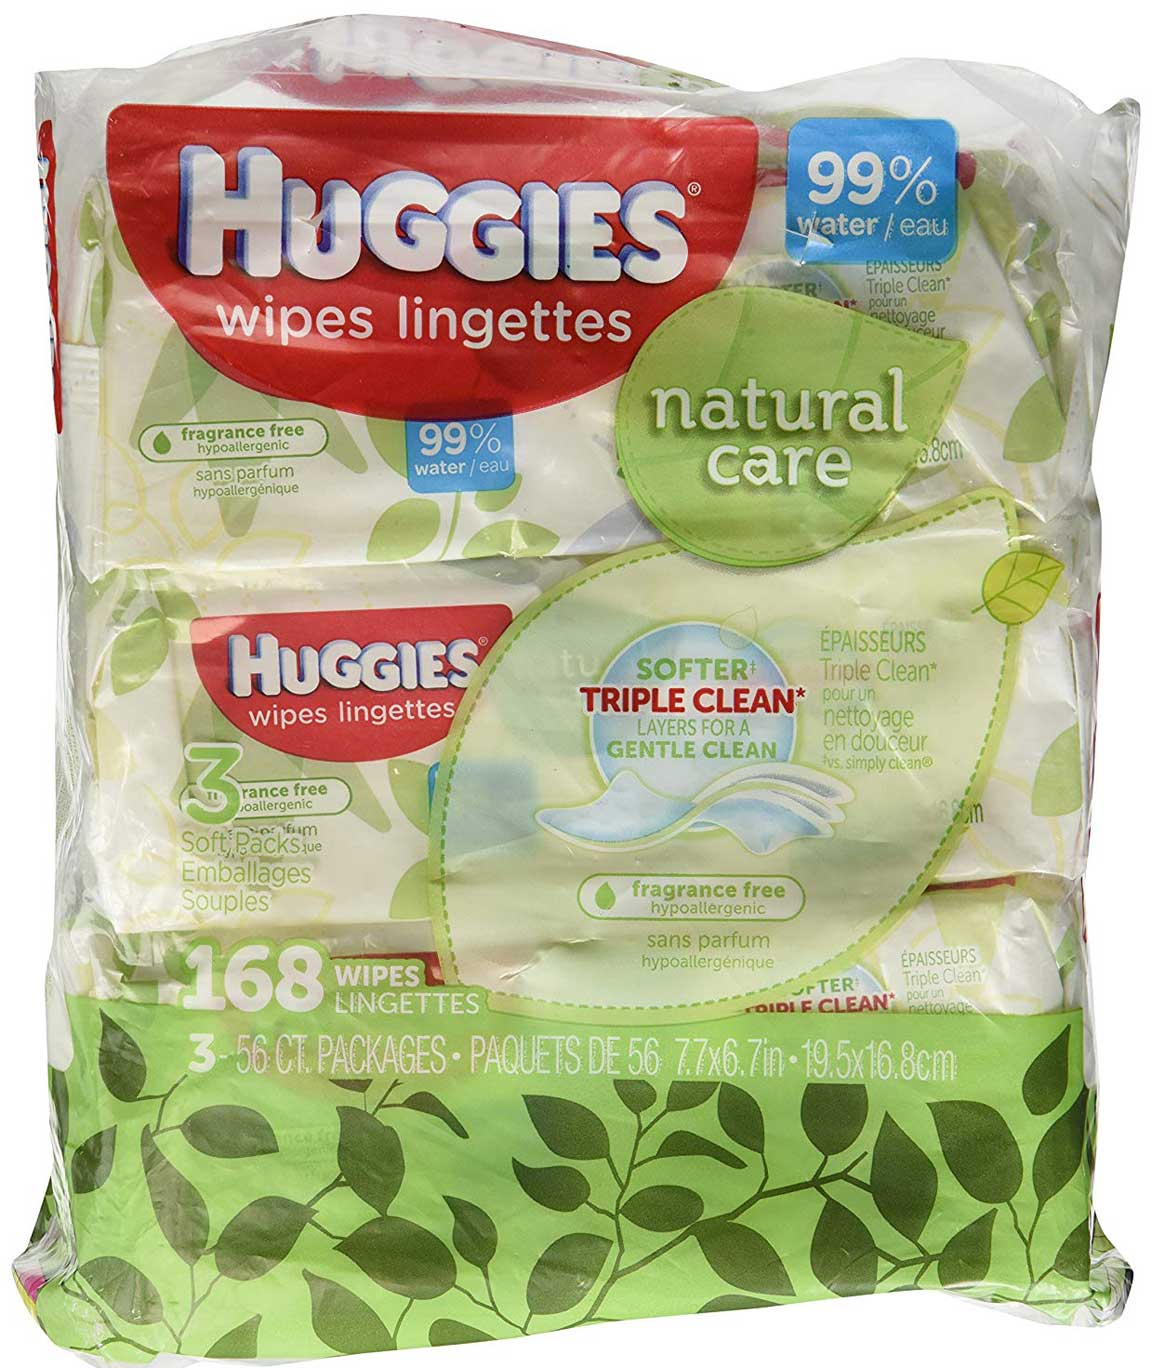 Huggies Natural Care Fragrance Free Soft Pack Wipes - 3 PK